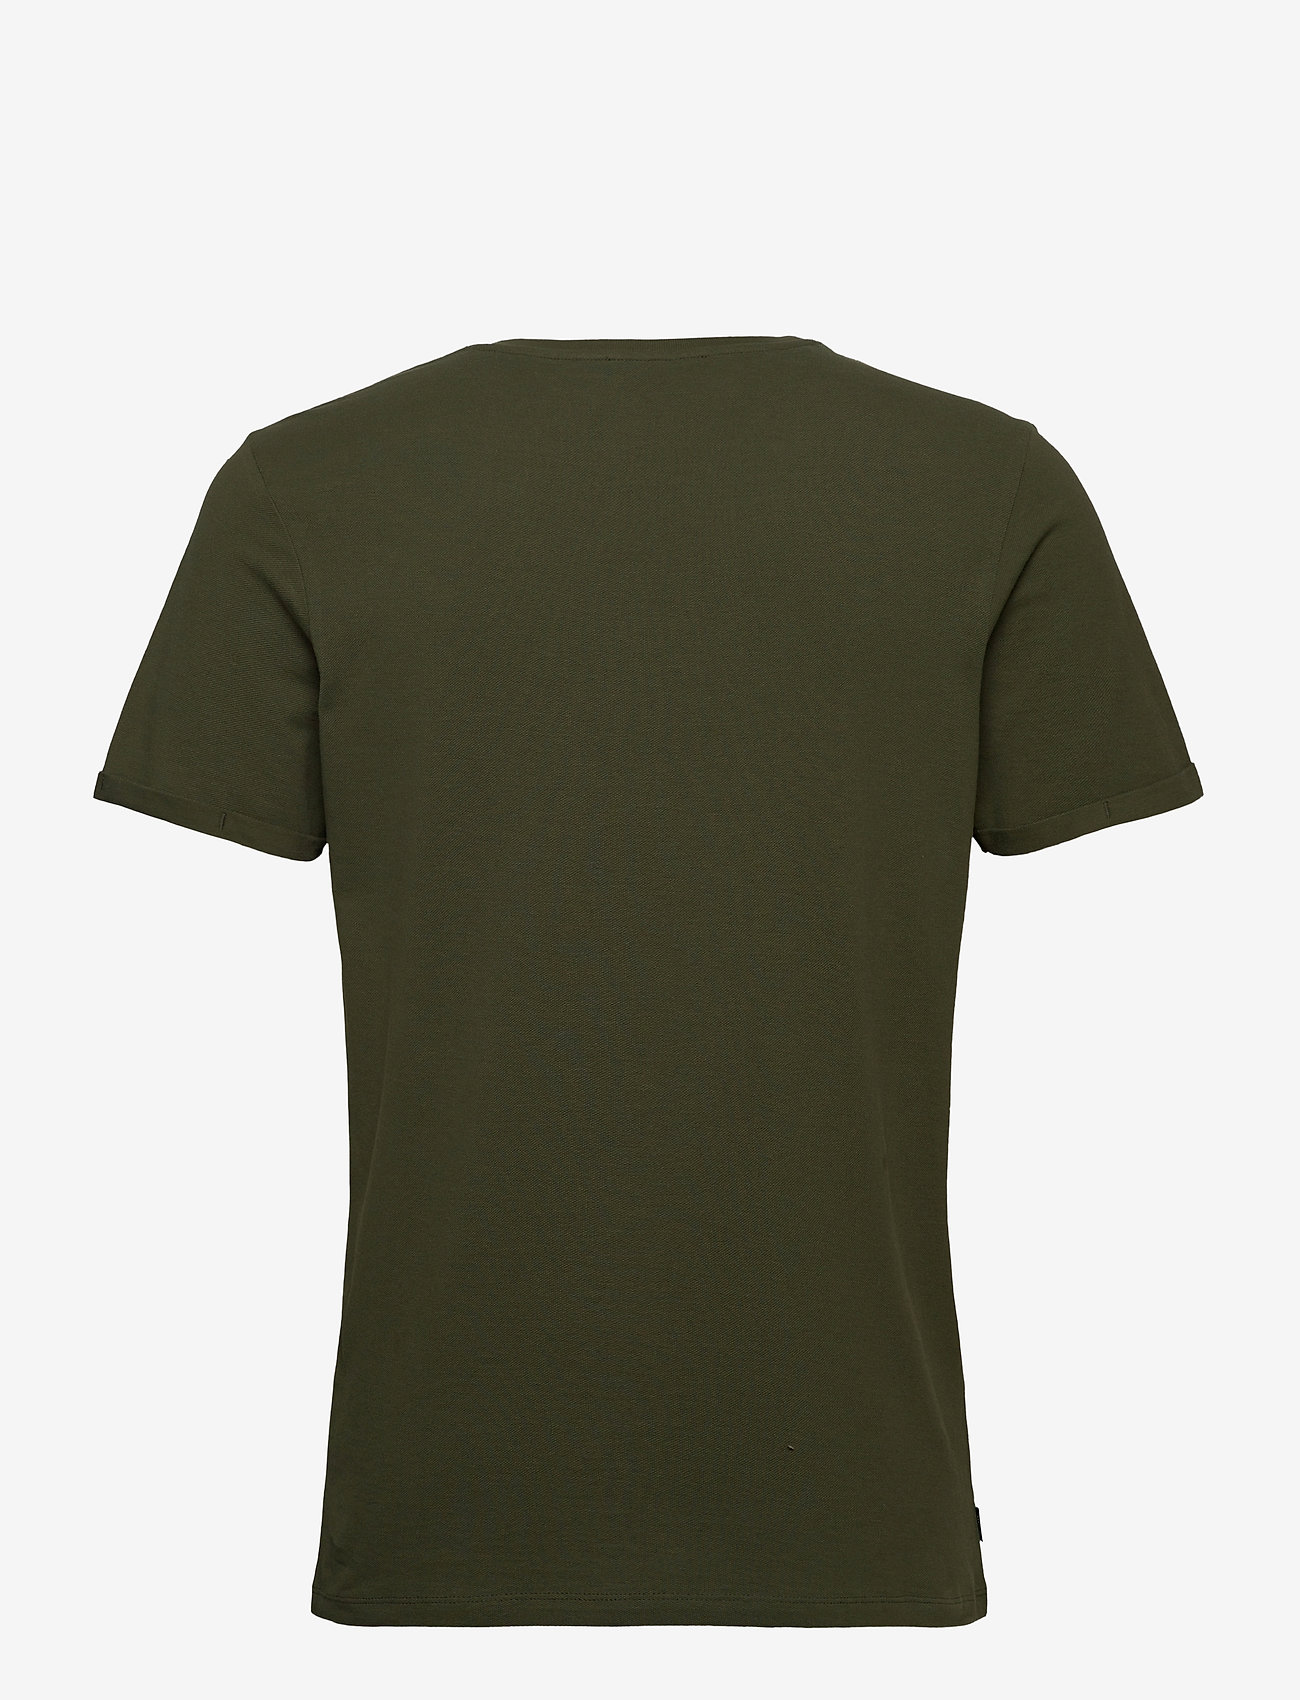 Jack & Jones JPRBLAHARDY TEE SS CREW NECK STS - T-skjorter FOREST NIGHT - Menn Klær